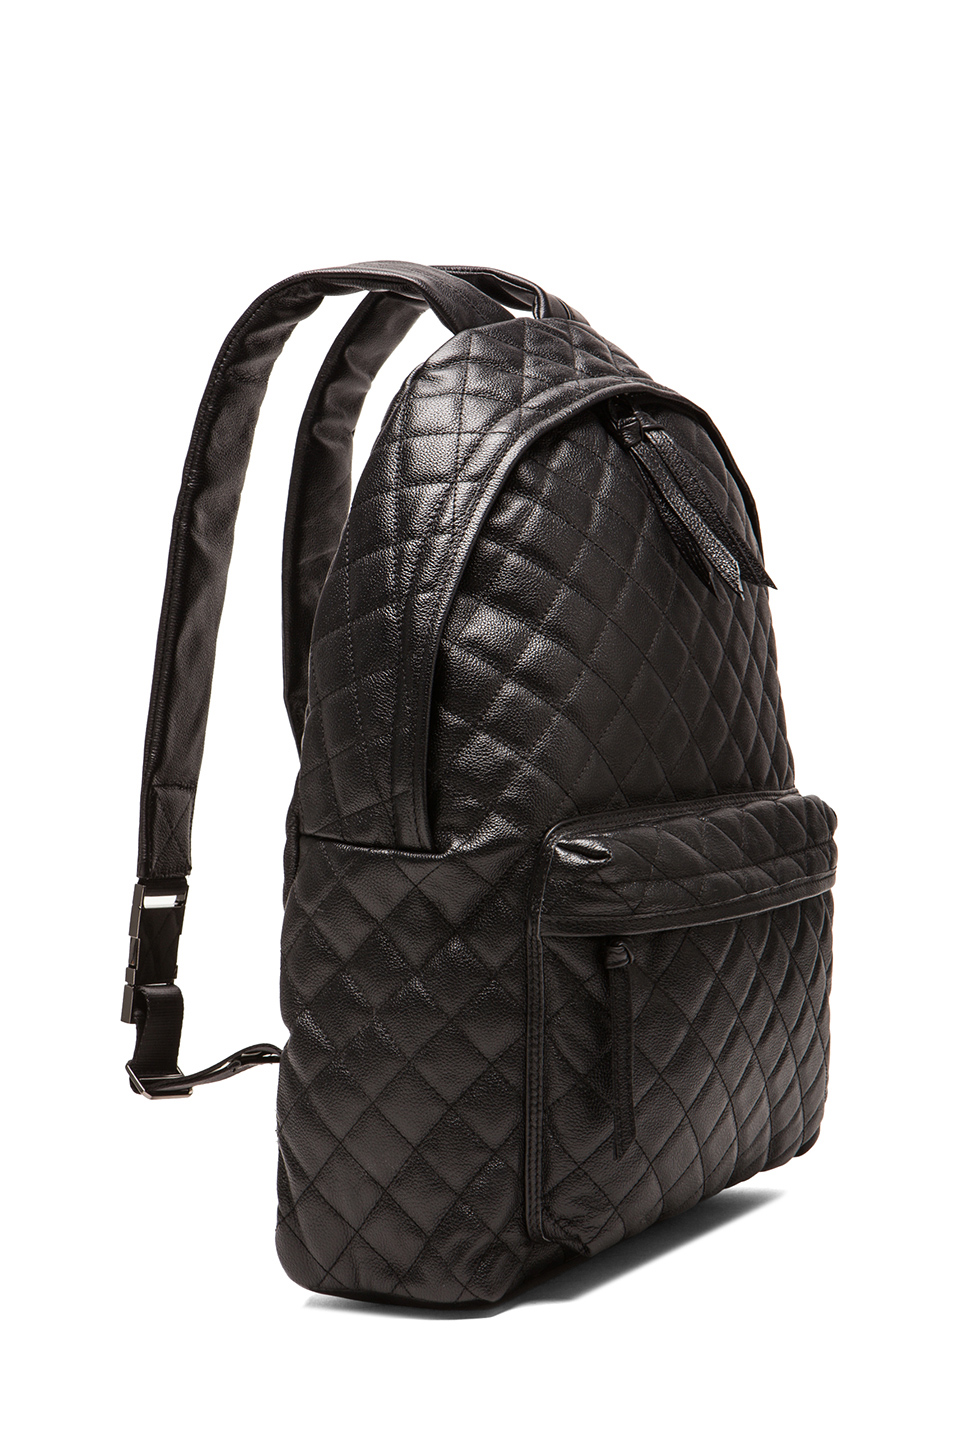 Leather Quilted Backpack K8x2sEbC